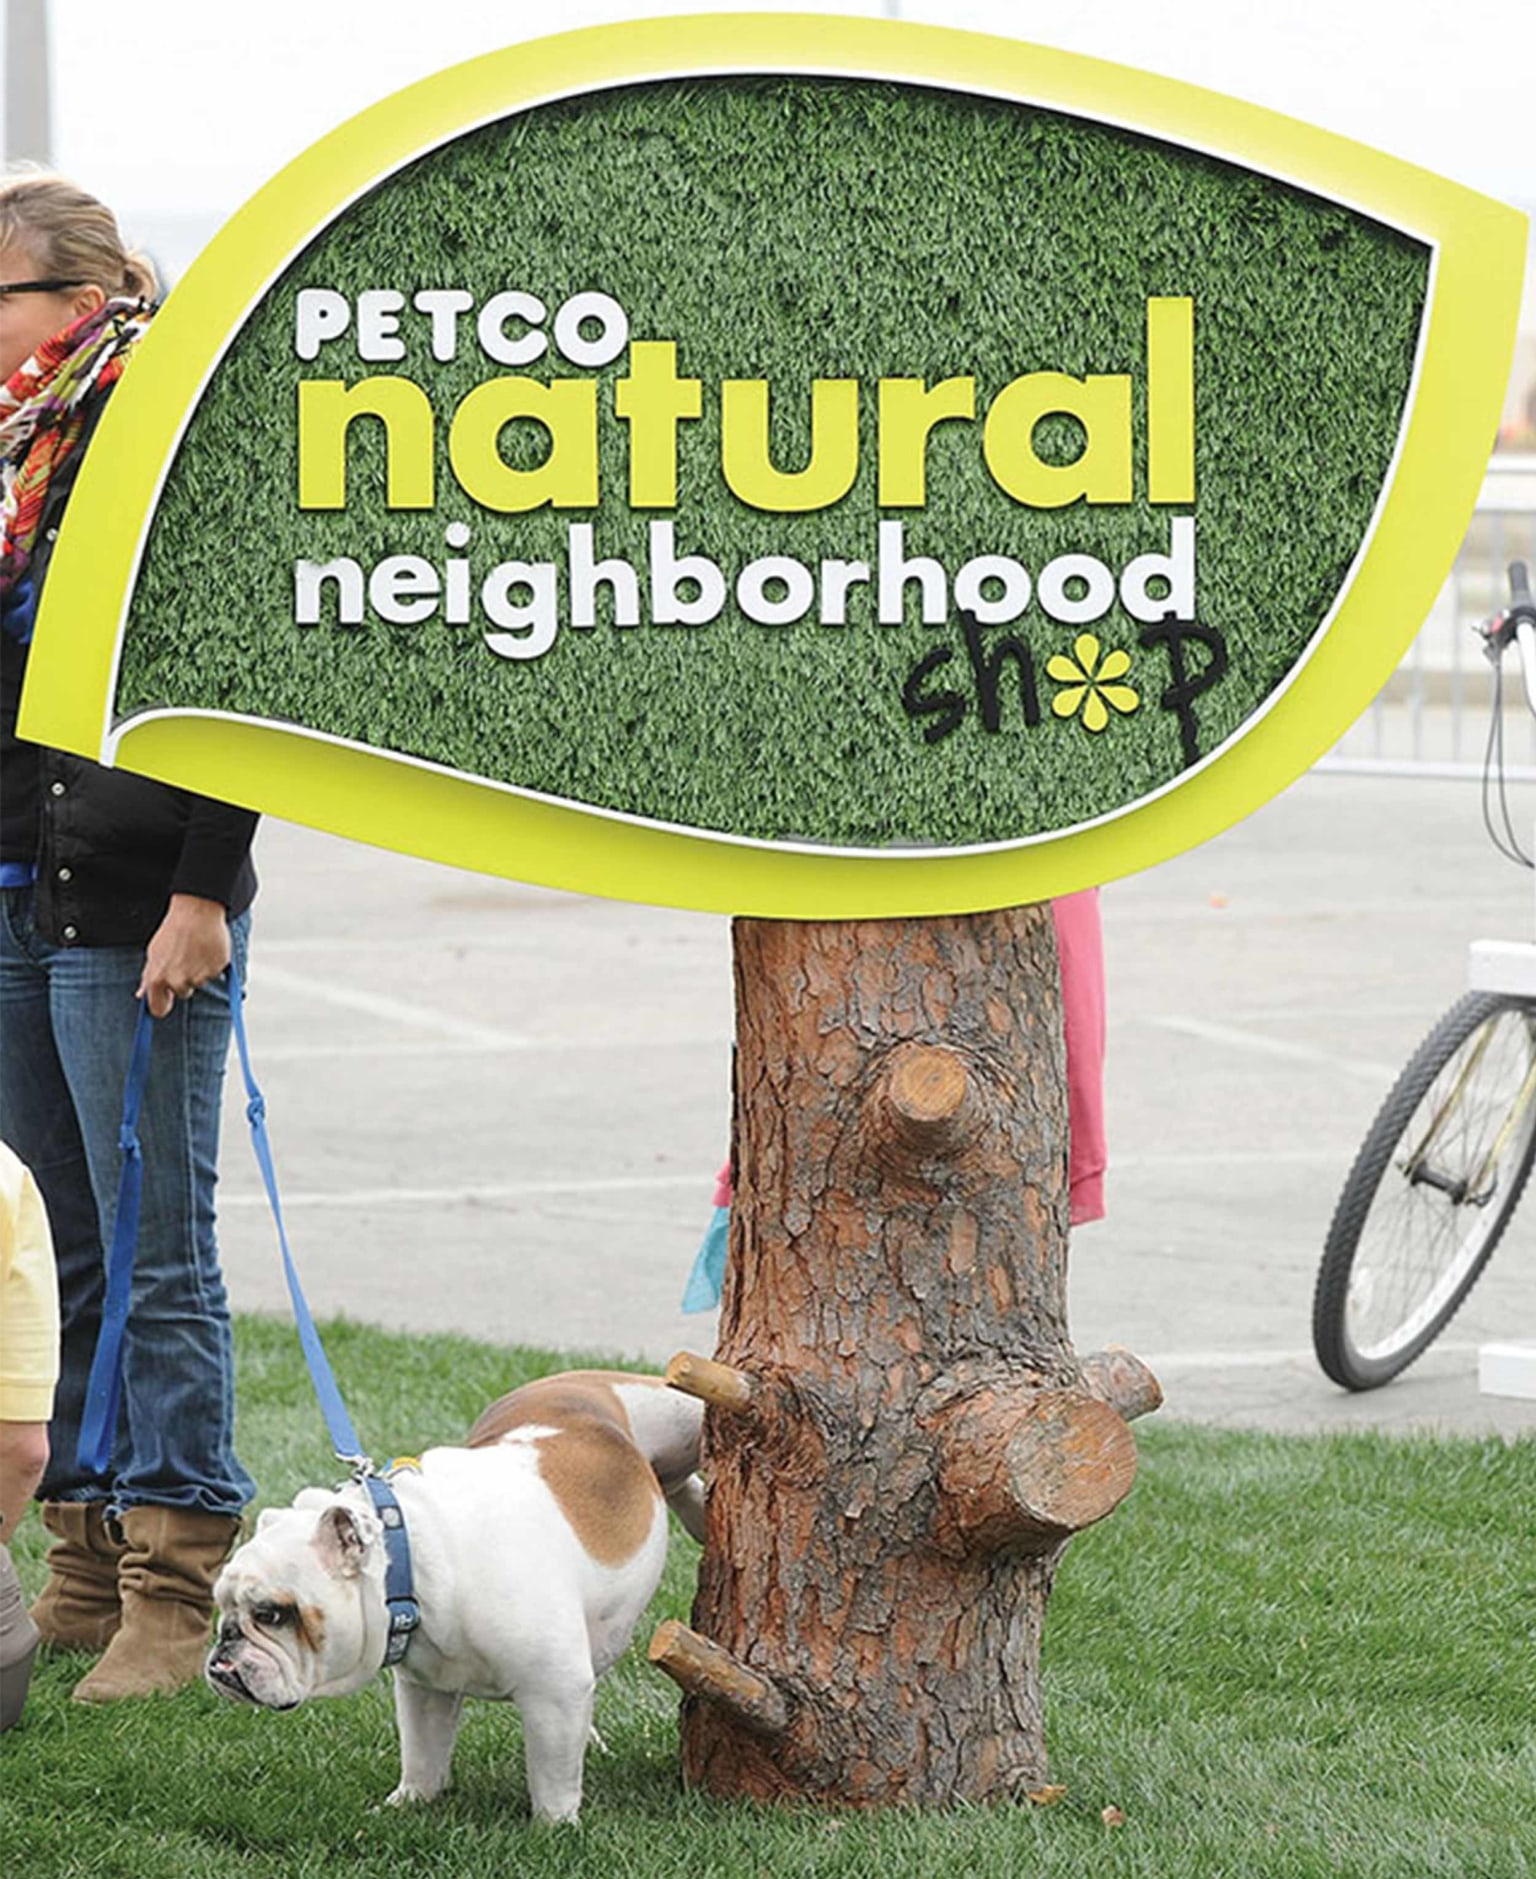 PETCO: Natural Neighborhood Shop